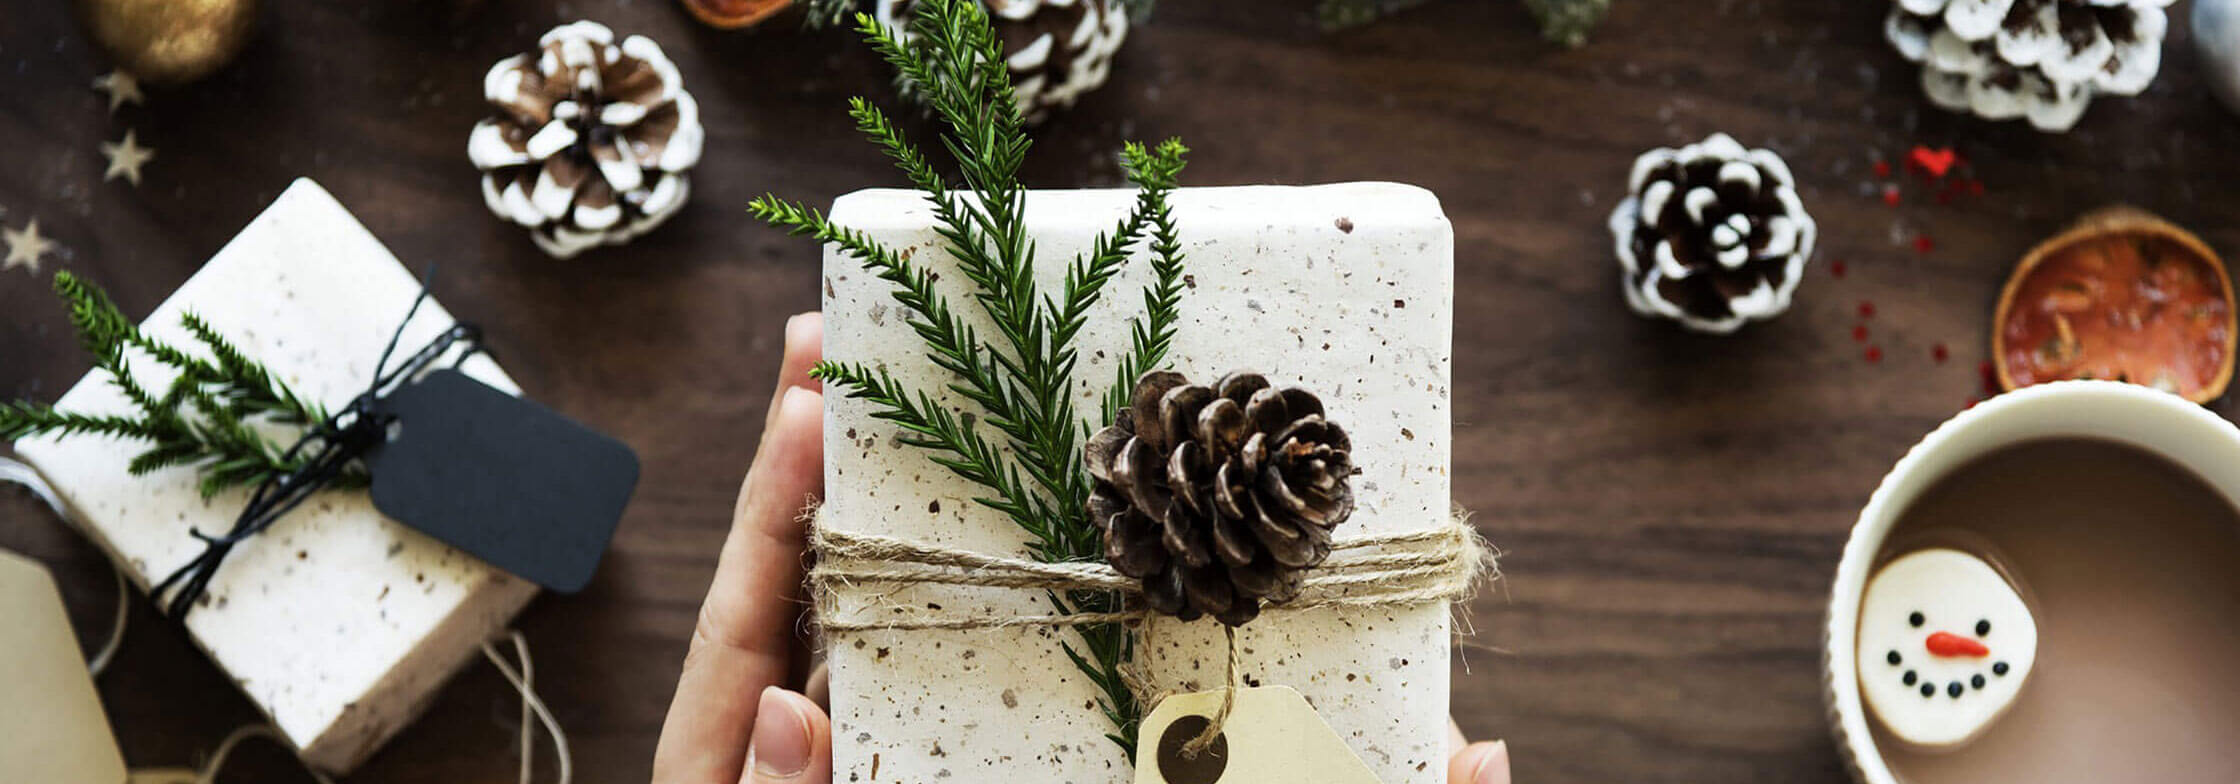 The gift of digital marketing insights